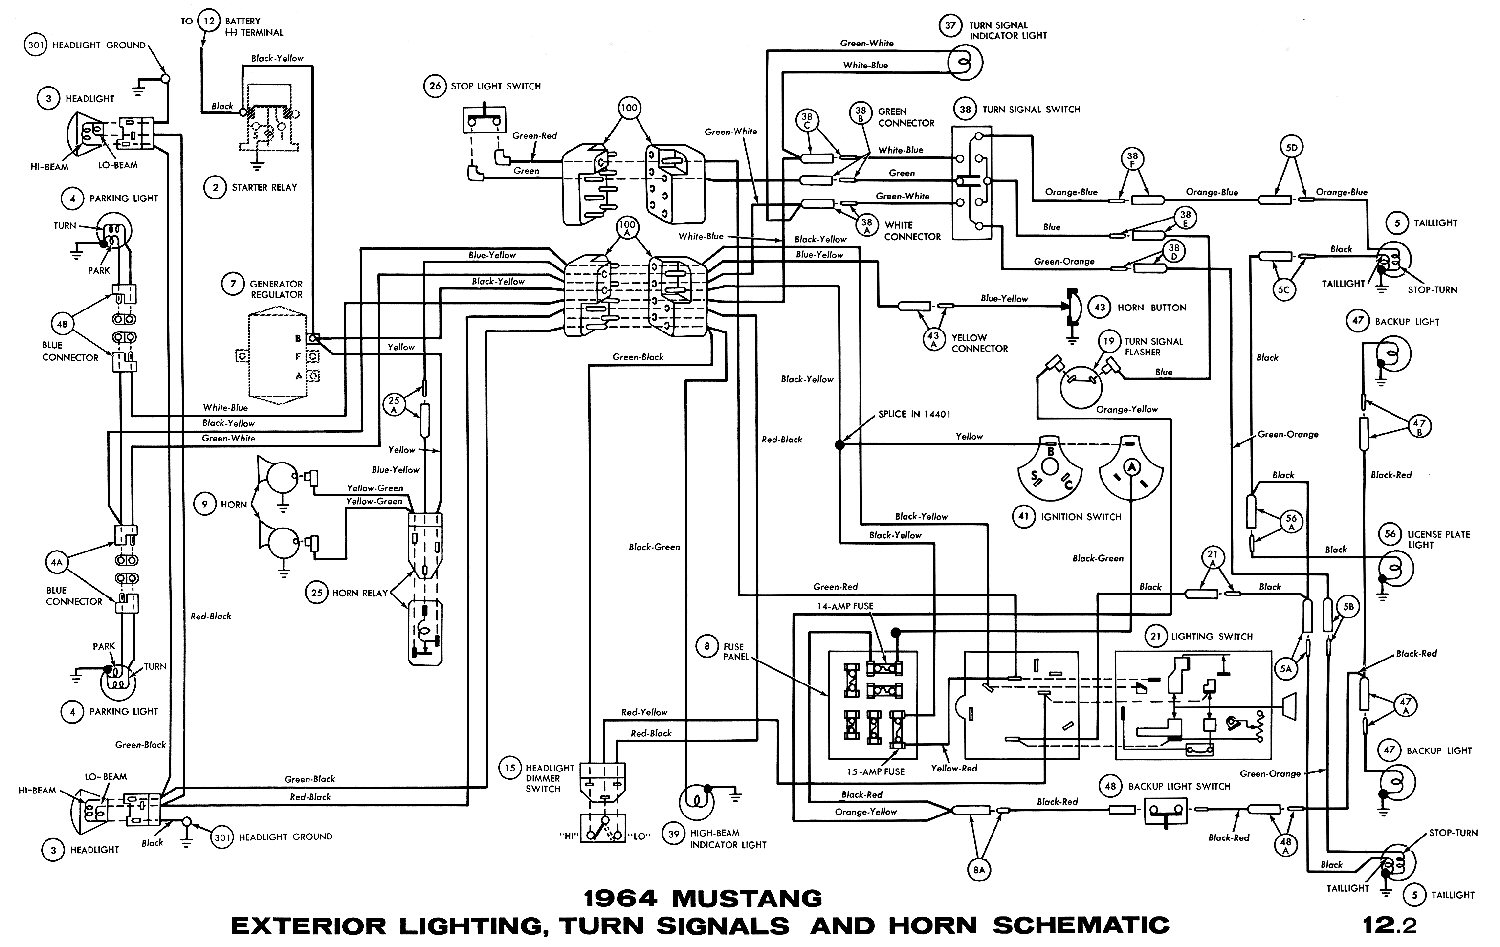 1964i 1964 mustang wiring diagrams average joe restoration 66 mustang alternator wiring diagram at couponss.co